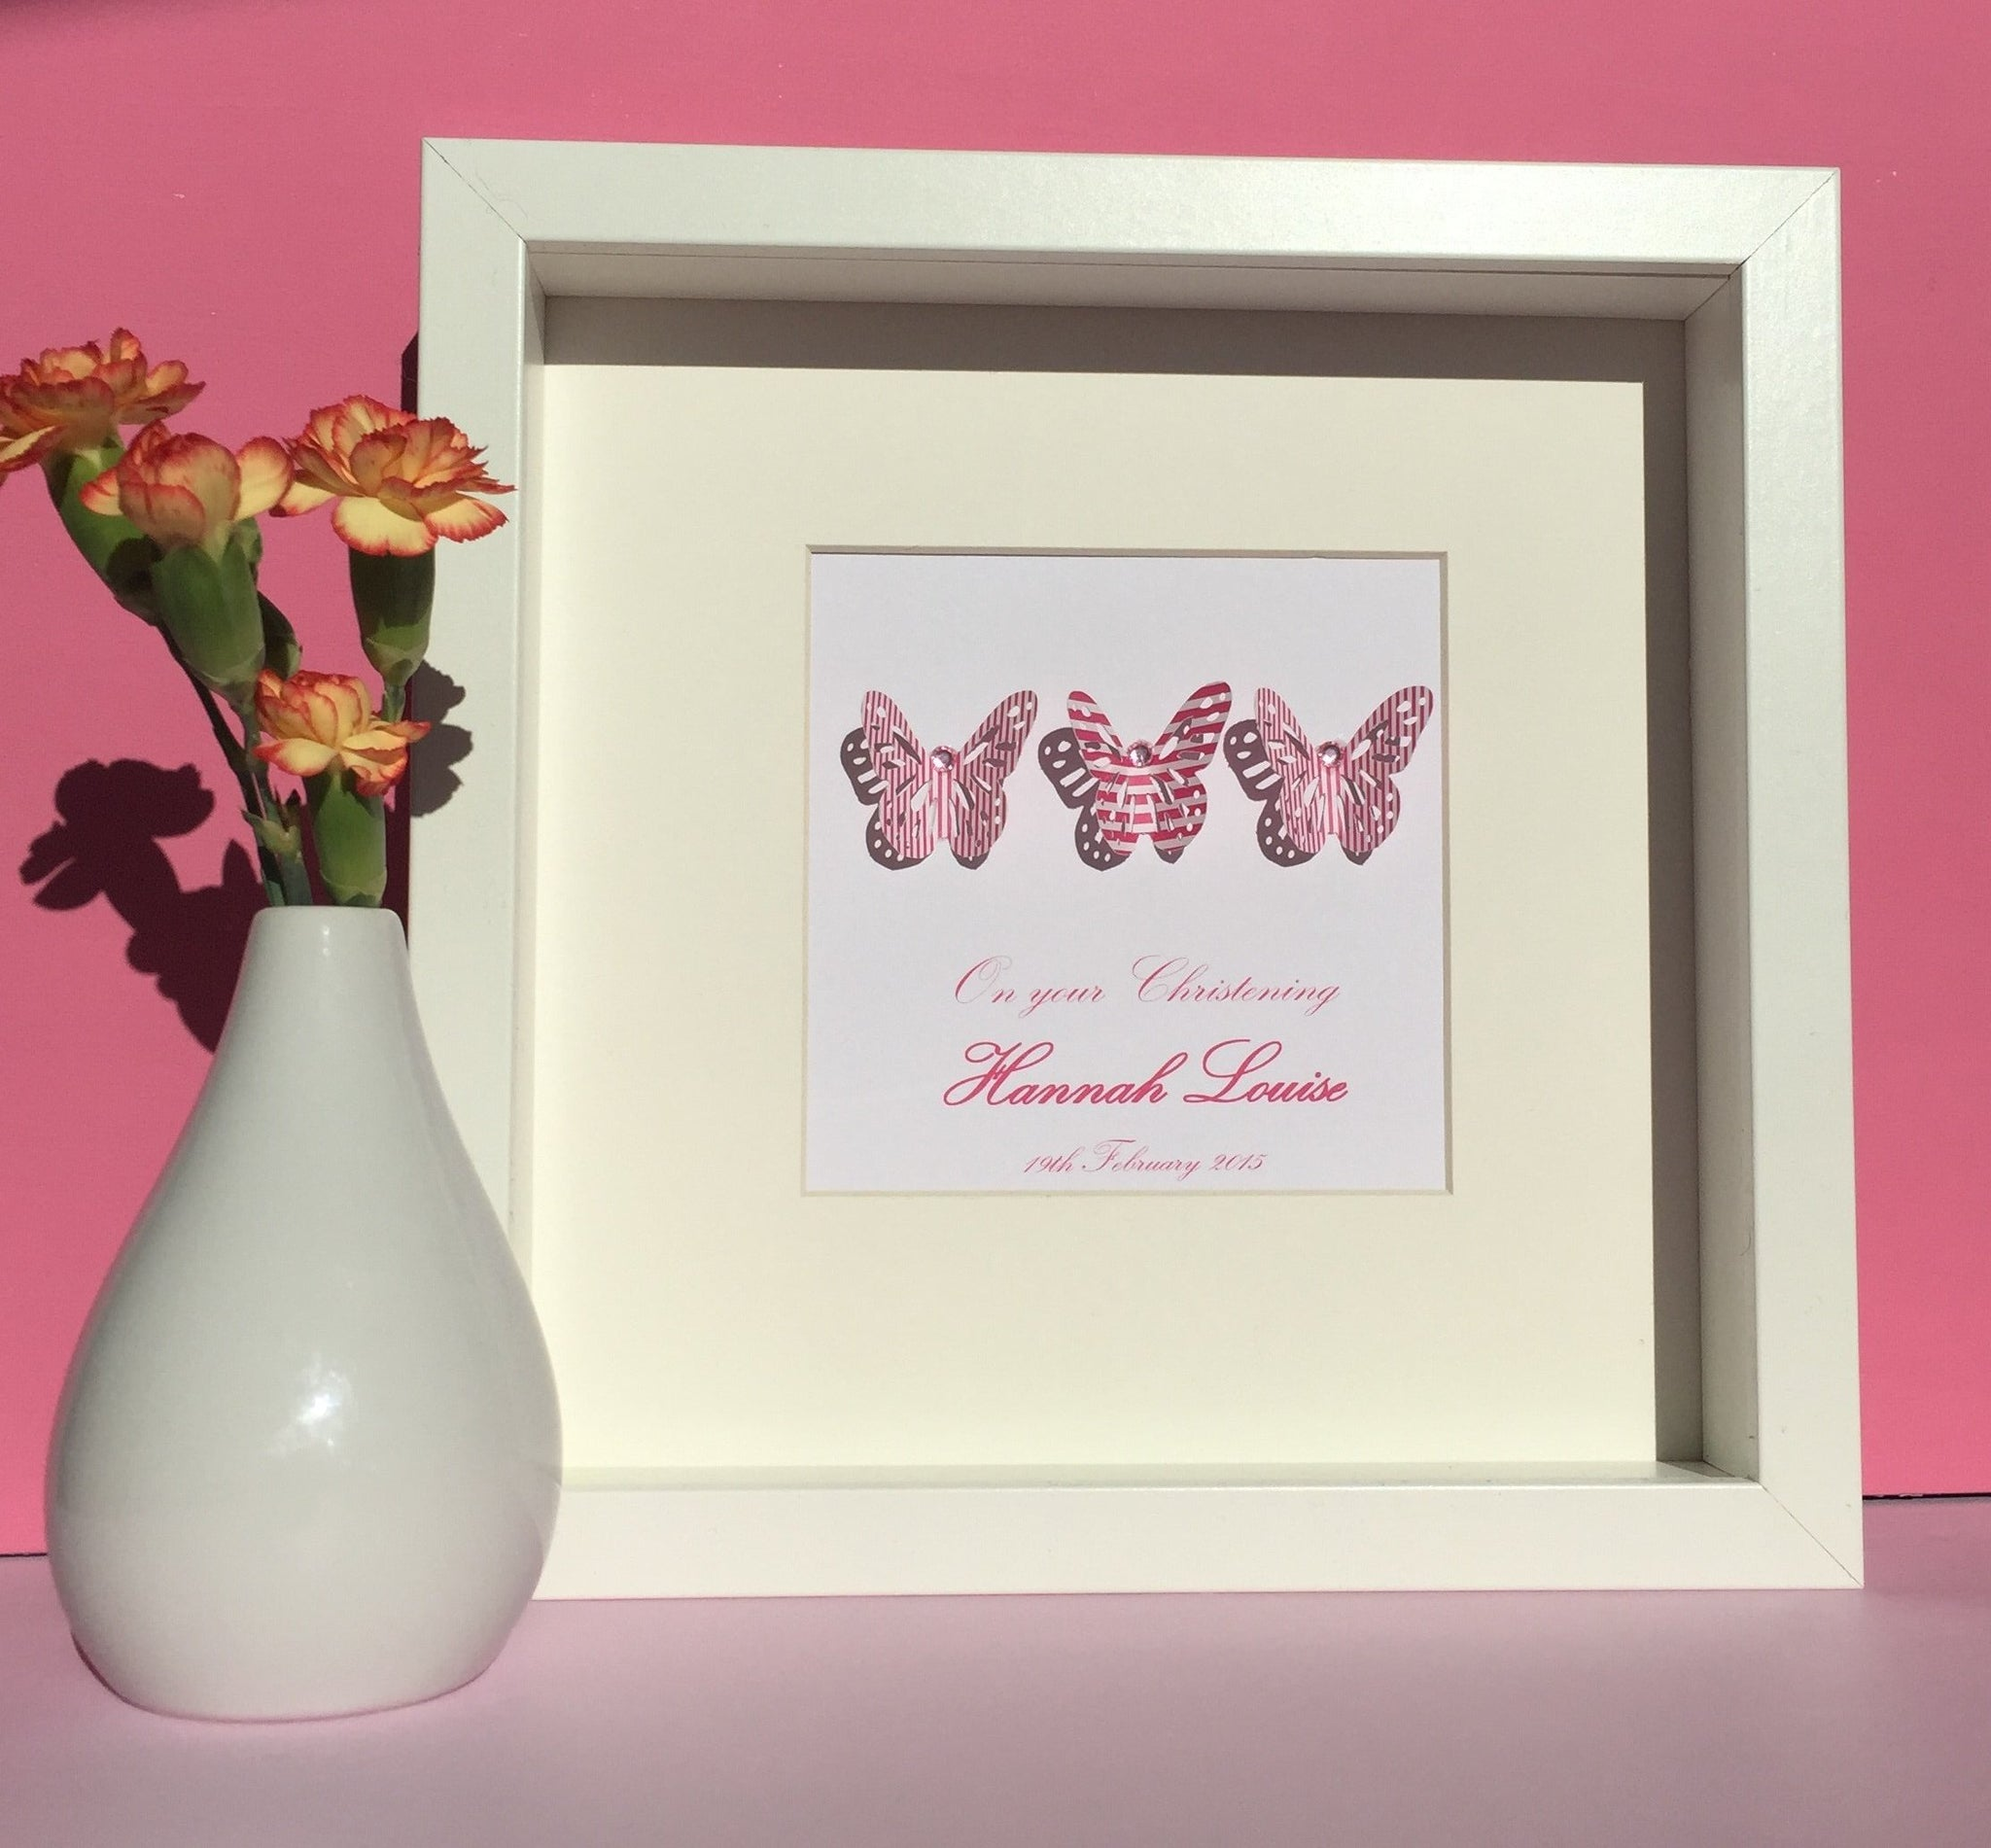 Beautiful butterflies button art framed picture.